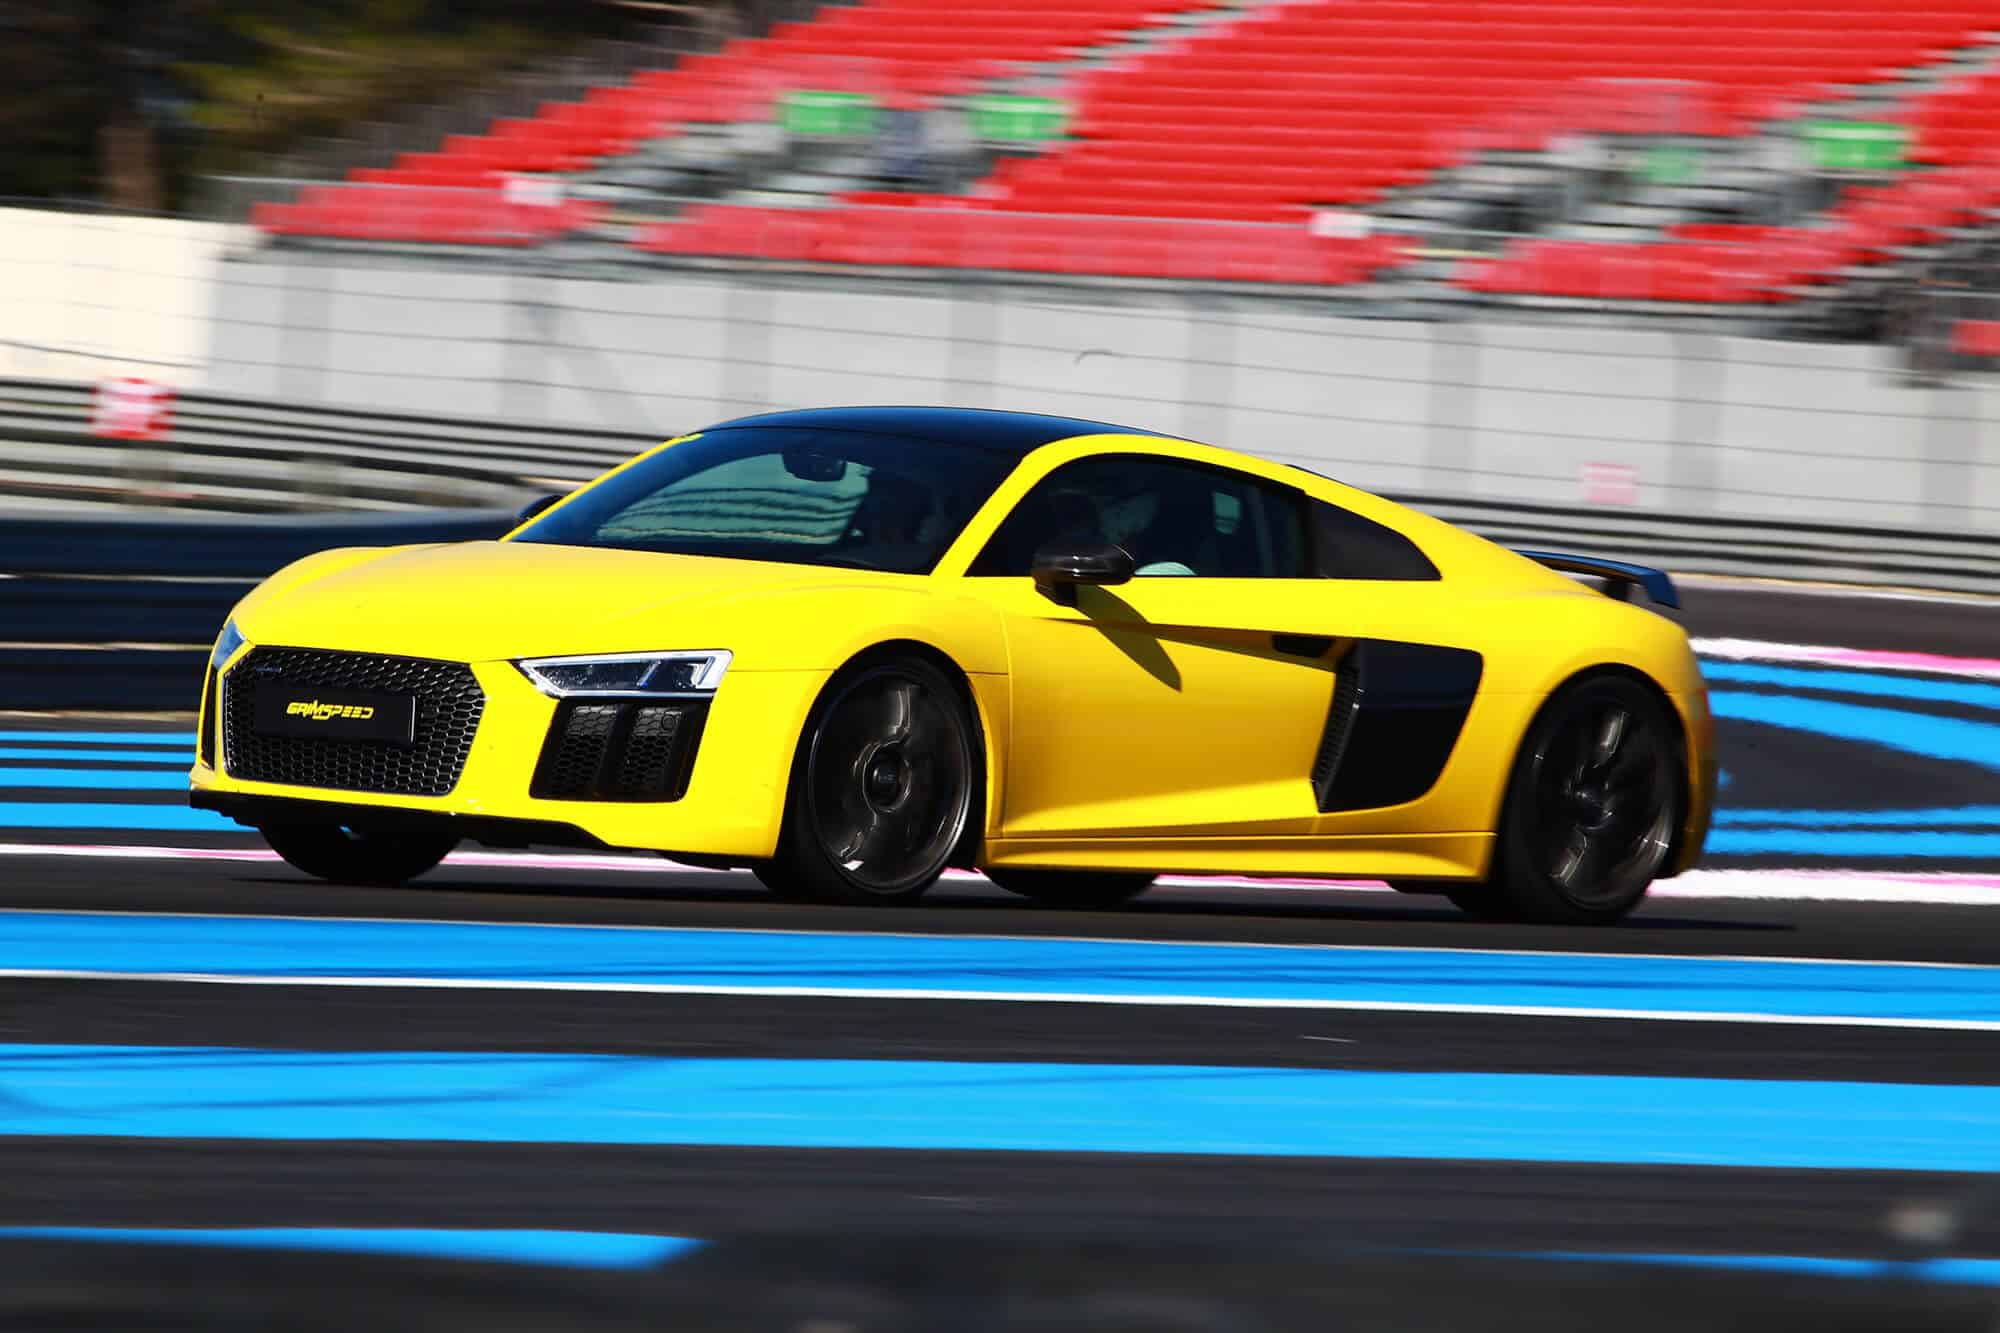 Armada-Racing-Trackday-Journee-Circuit-Audi-R8-3